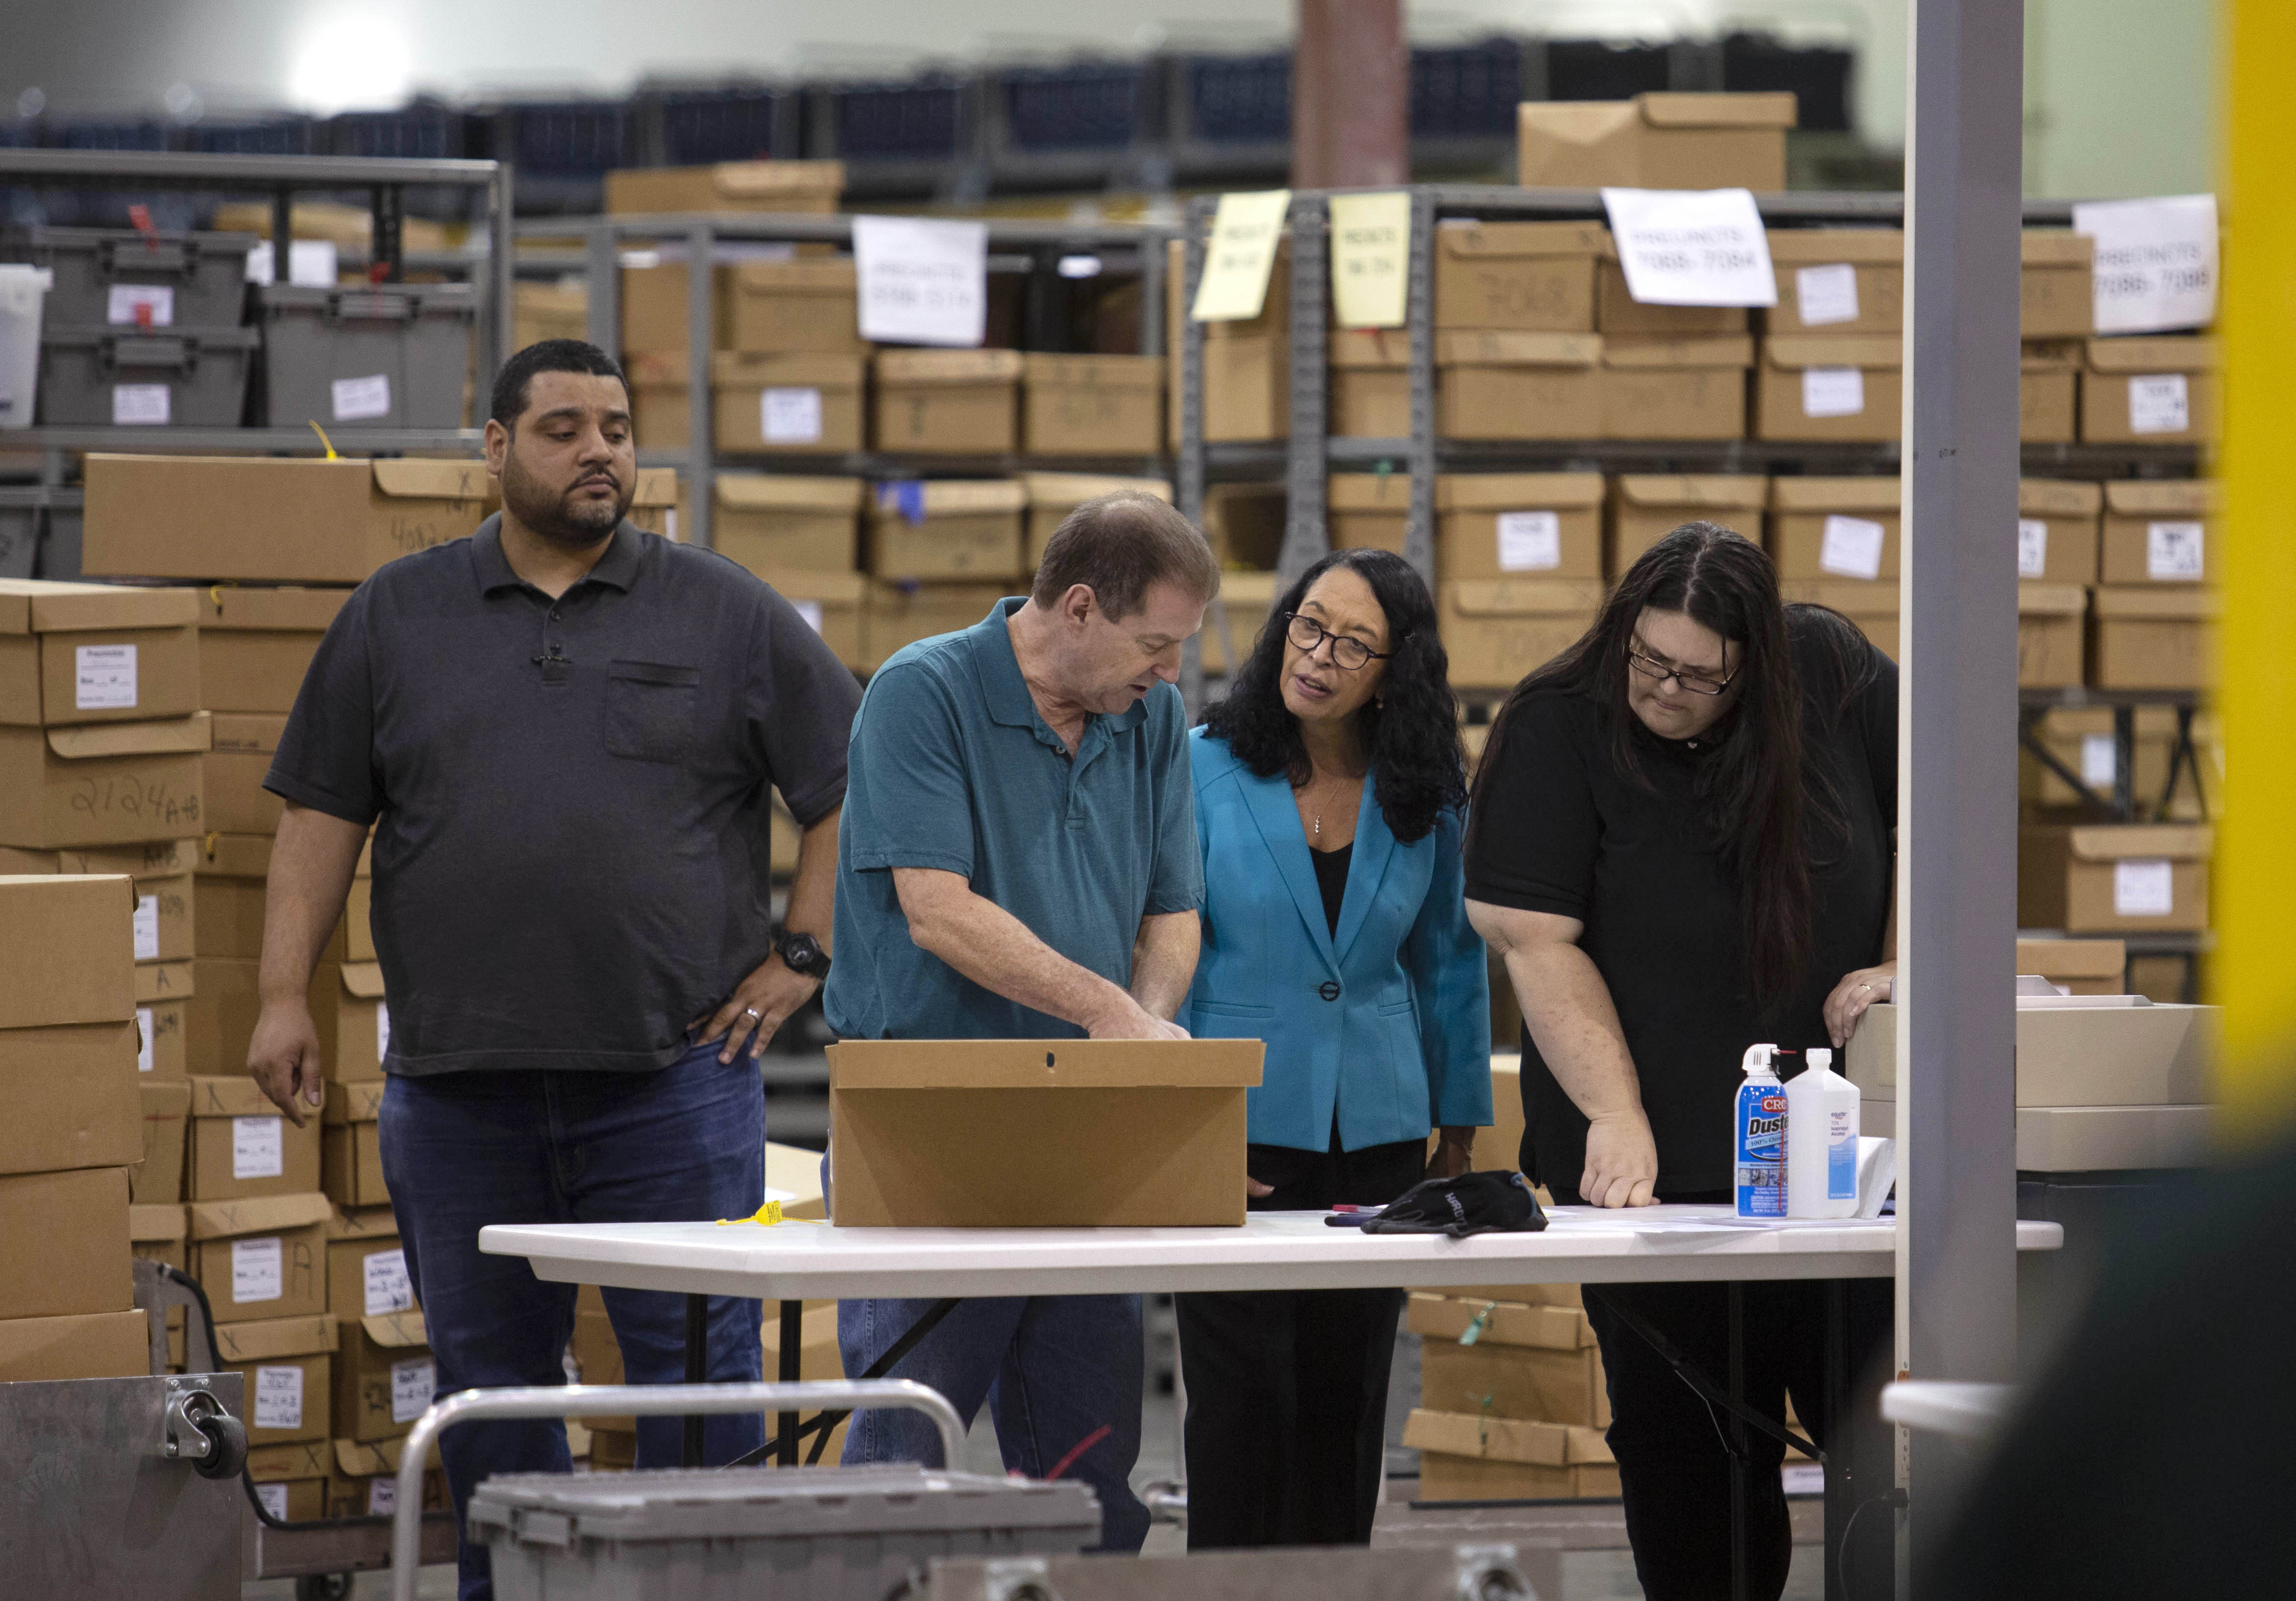 PALM BEACH, FL - NOVEMBER 15: Palm Beach County Supervisor of Elections Susan Bucher (C-R) supervises workers that are preparing to feed ballots through machines at the Supervisor of Elections Service Center on November 15, 2018 in Palm Beach, Florida. After ballot-counting machines overheated in Palm Beach County on Tuesday forcing a restart of vote counting, the county remains one of the last to finish their recount. (Photo by Saul Martinez/Getty Images)